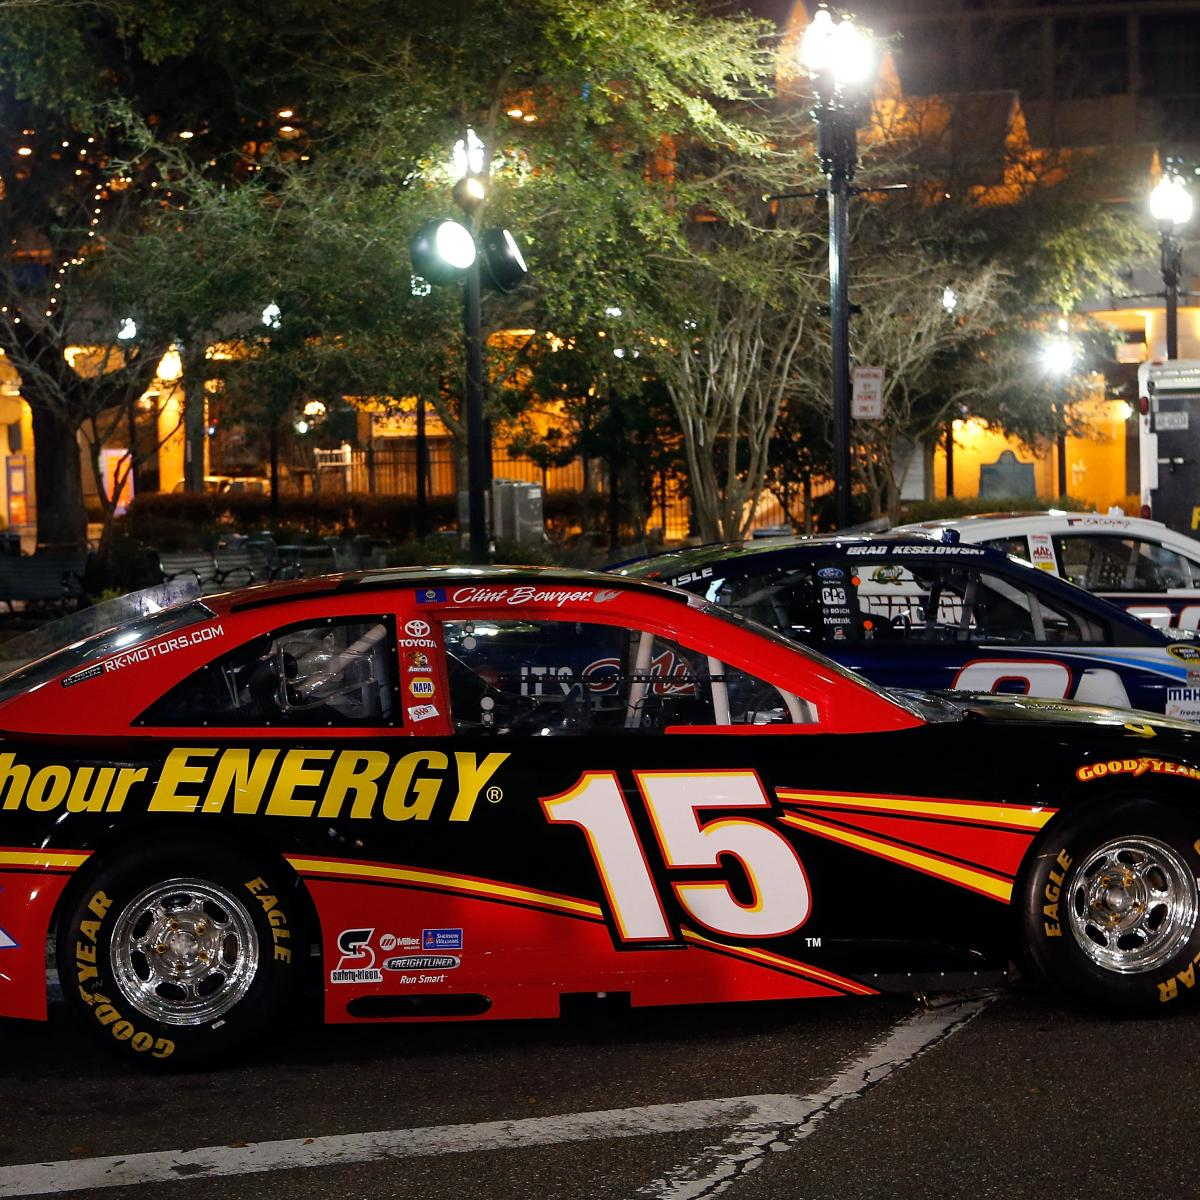 5 Early Opinions About NASCAR's Gen-6 Cars